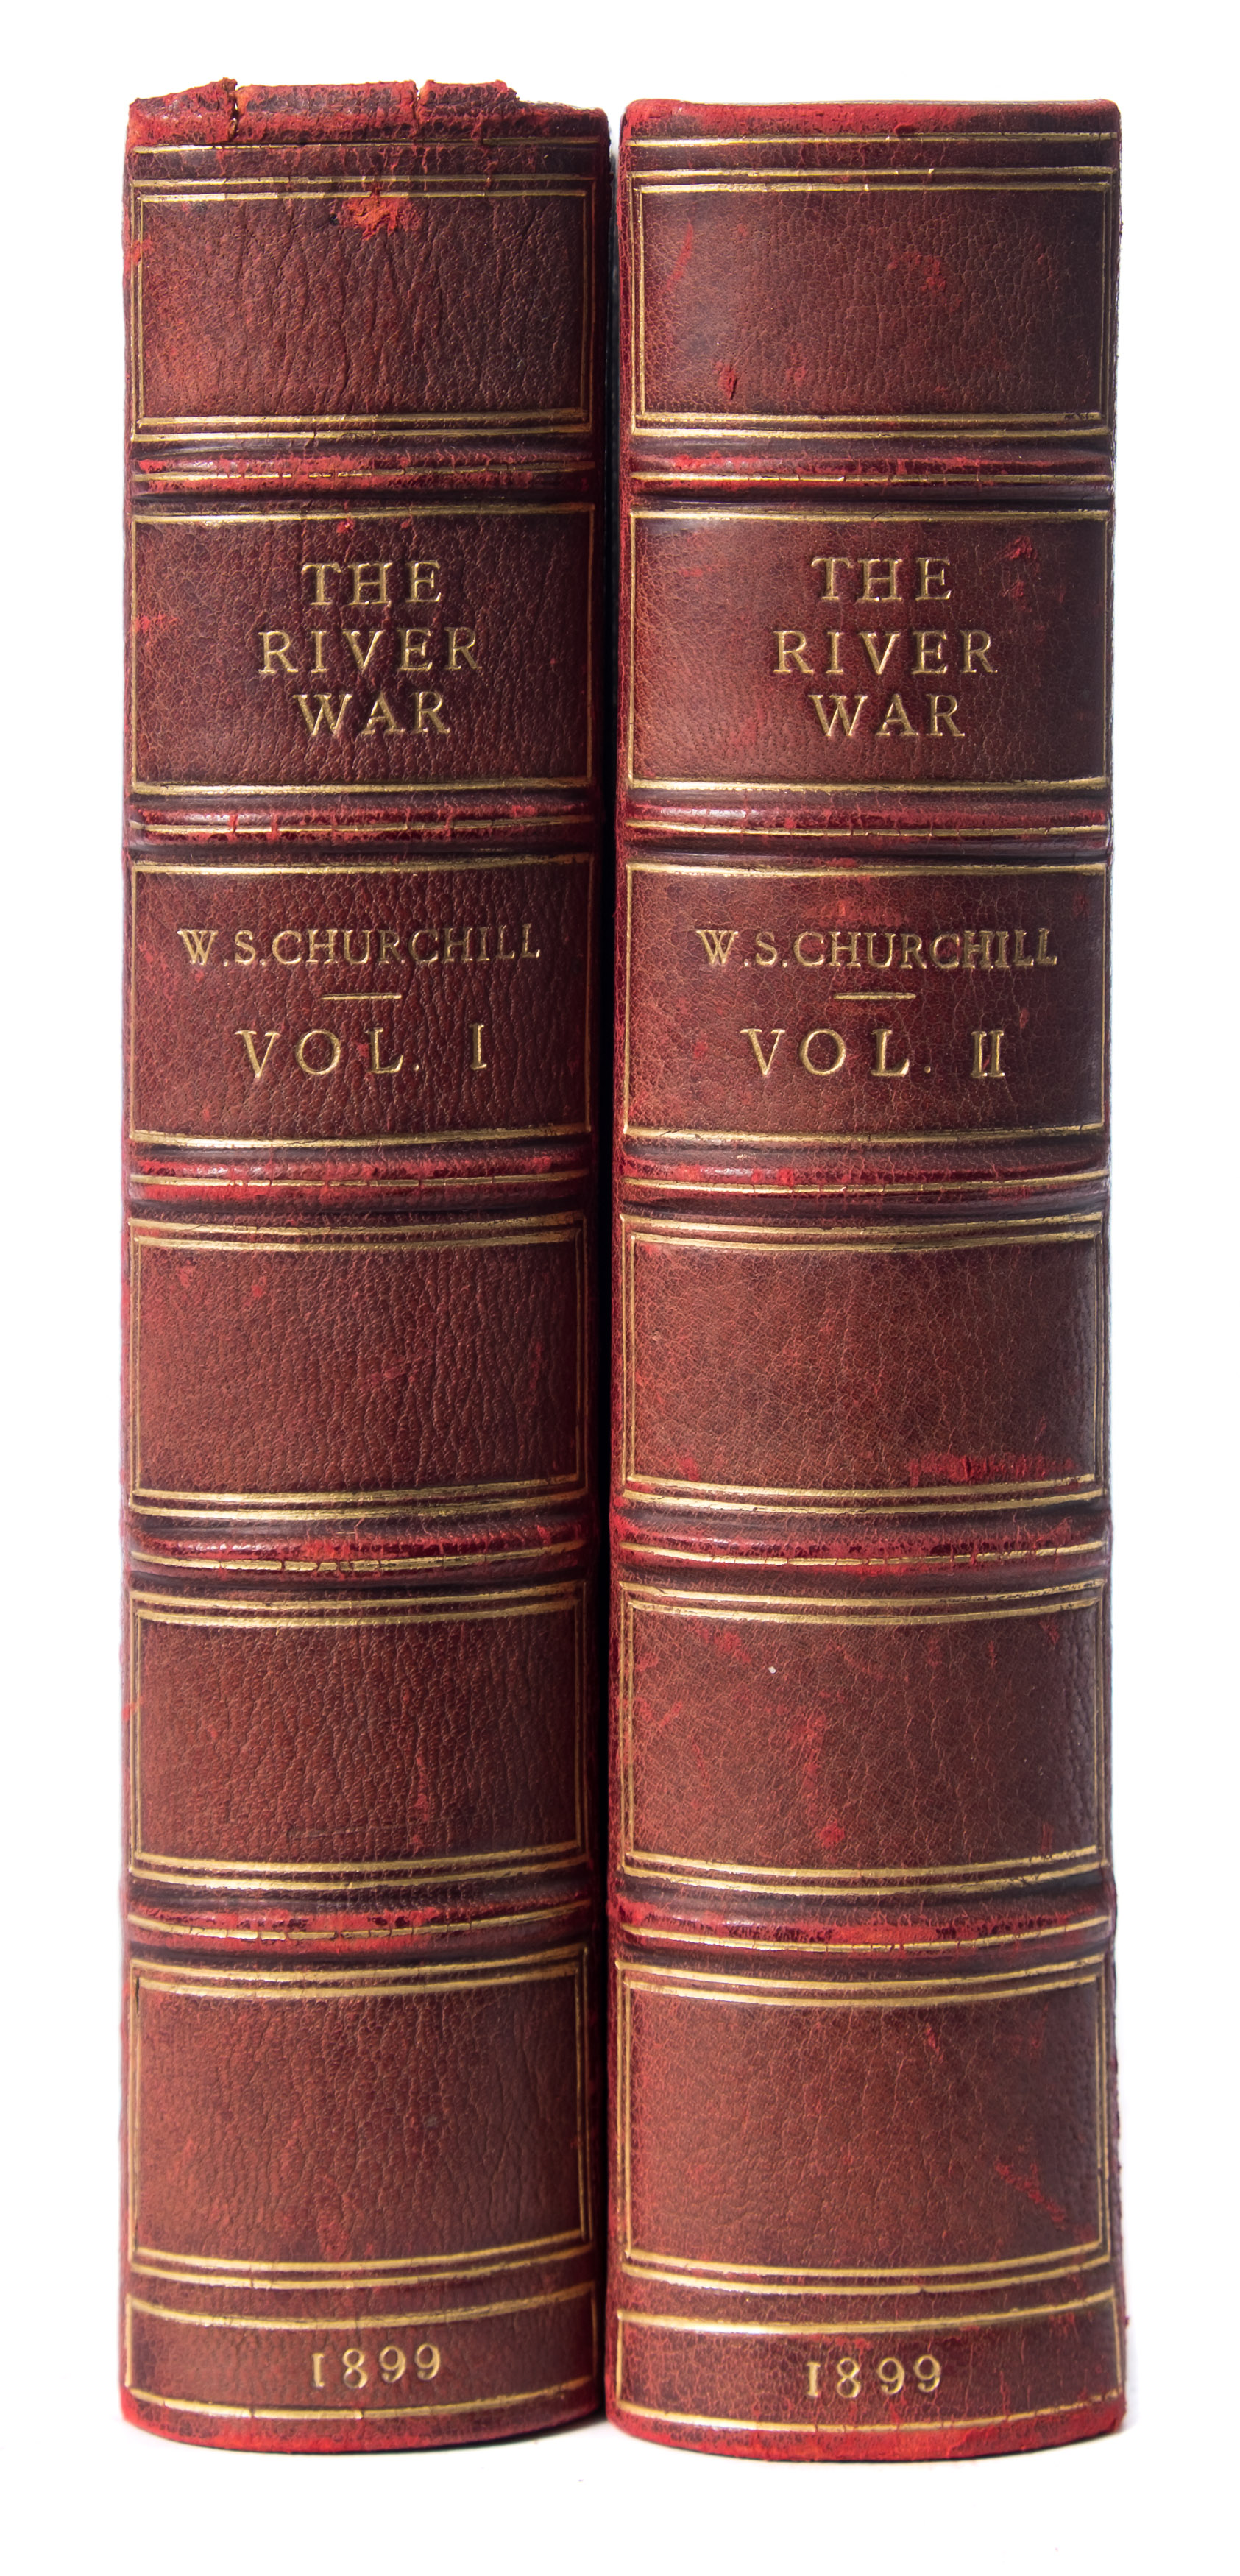 the river war by sir winston churchill (bk19/328)